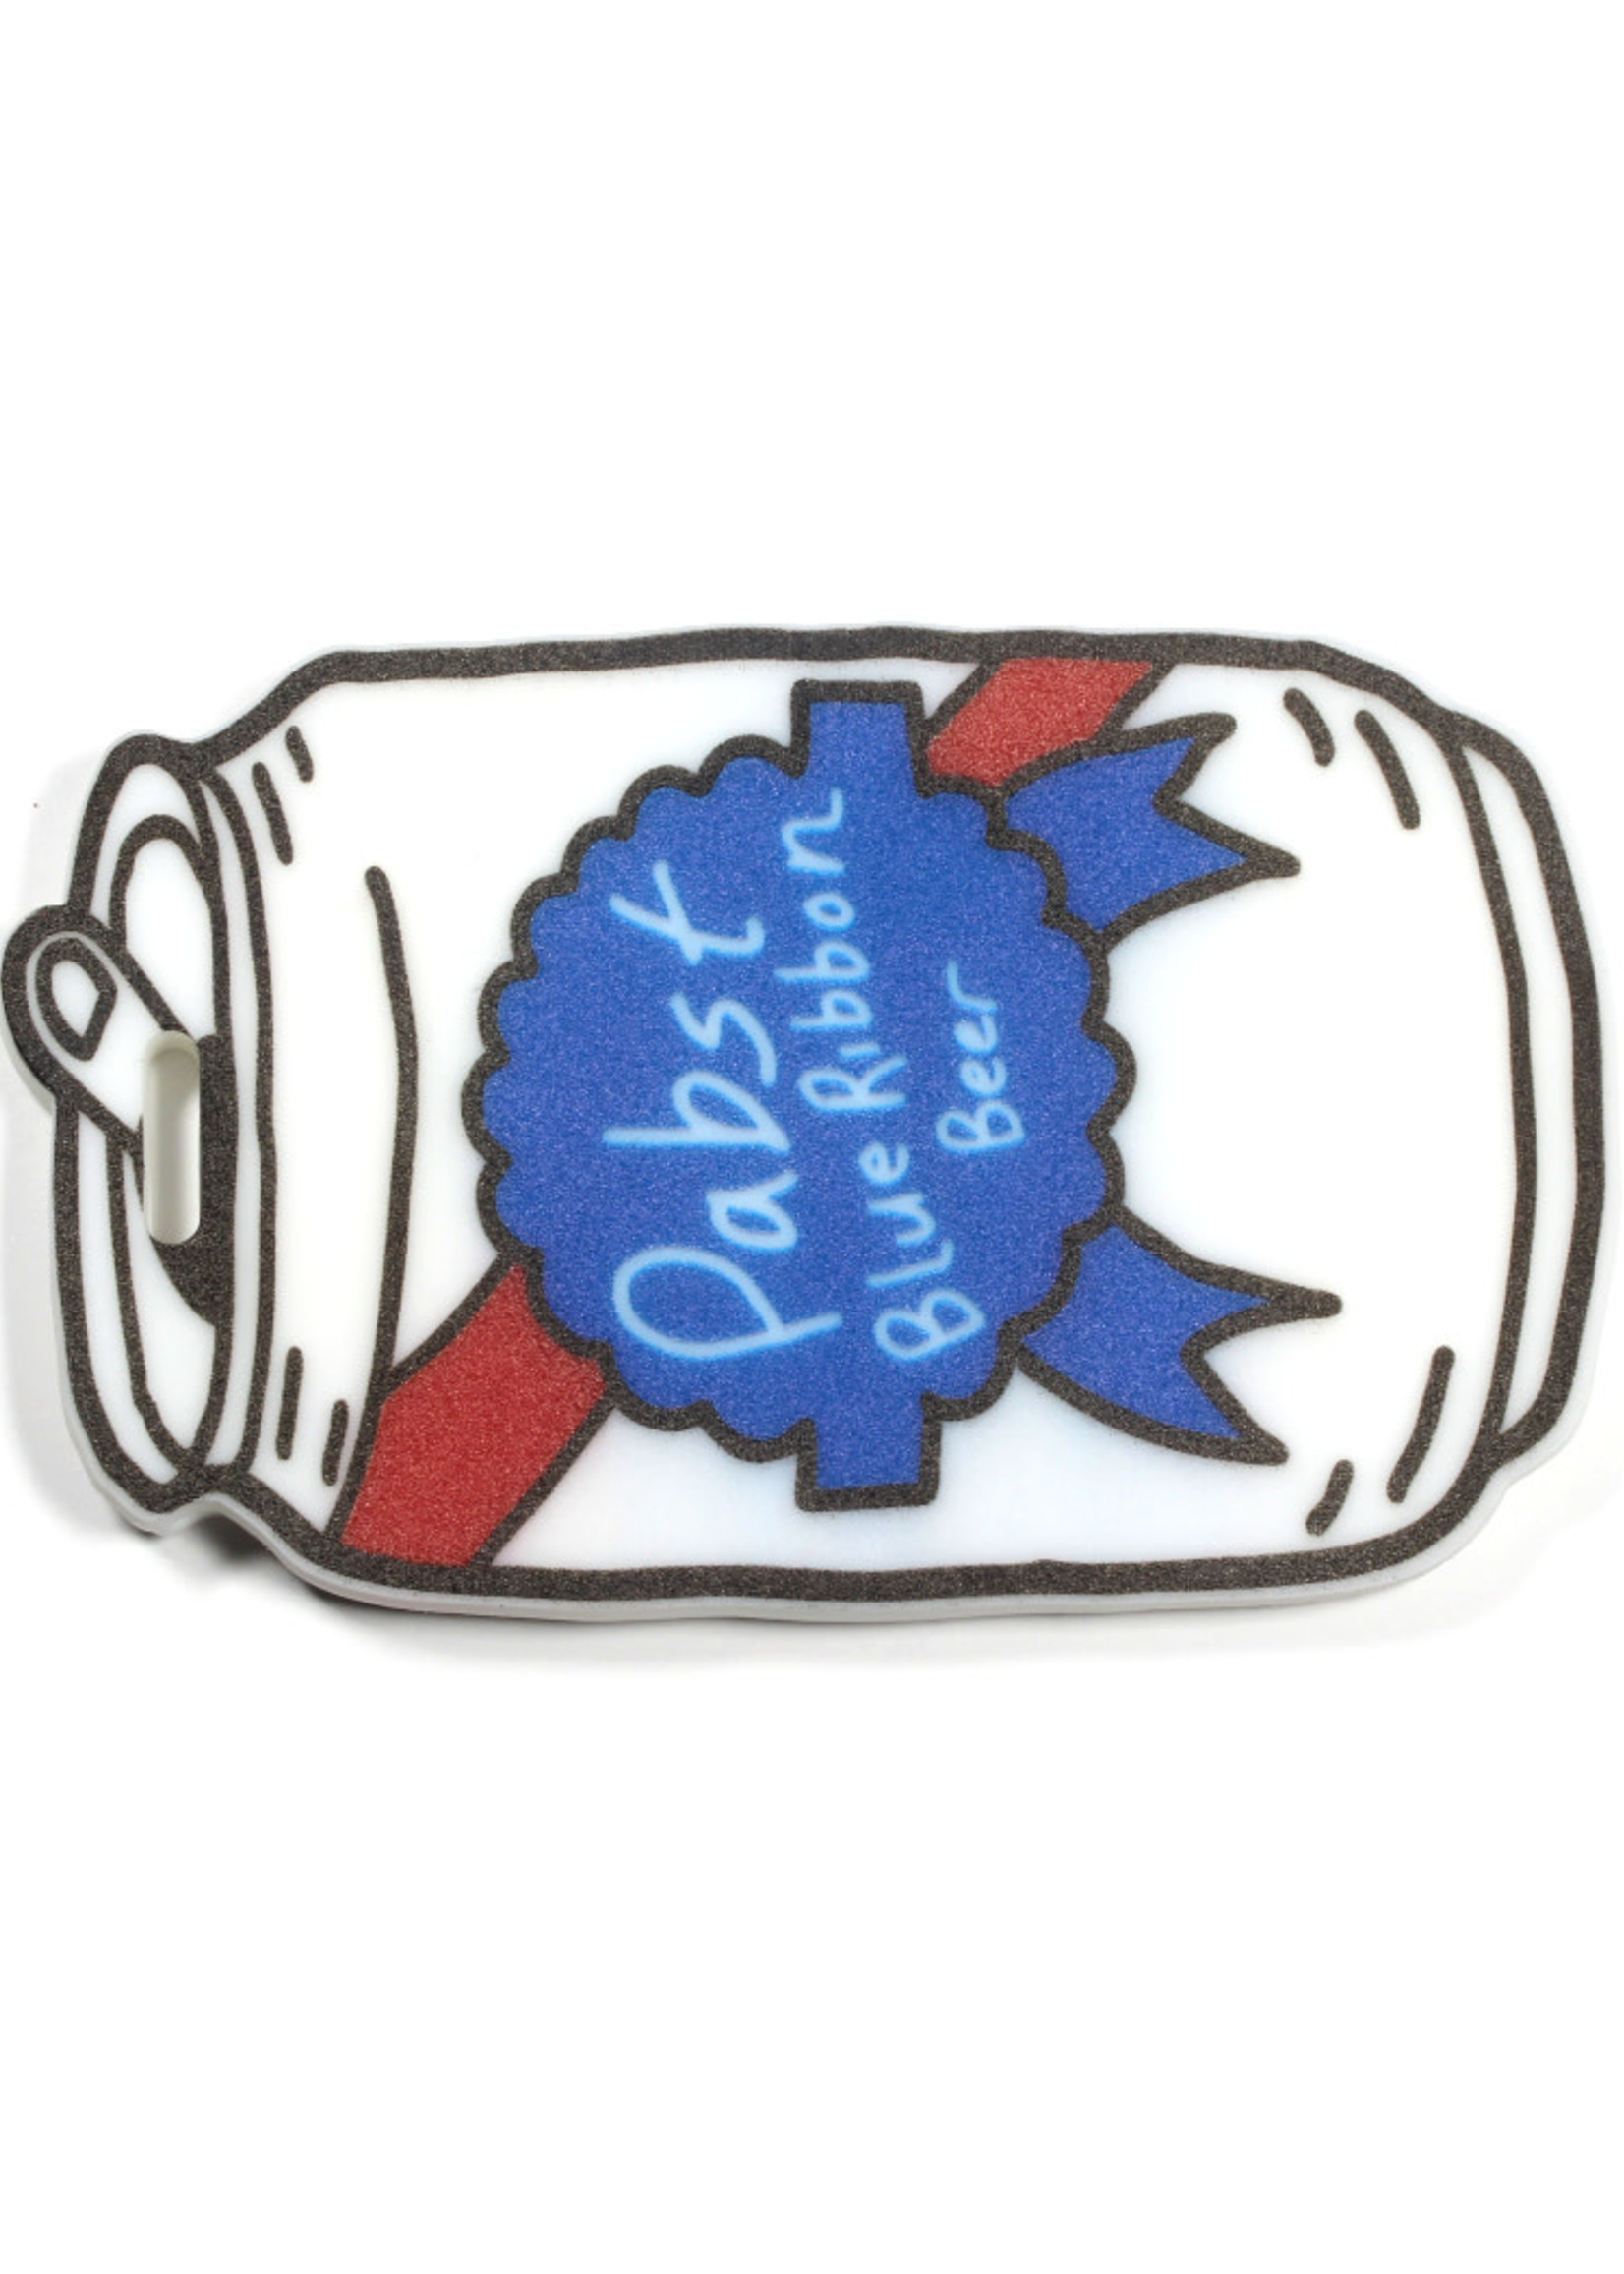 Pabst Pabst Luggage Tag